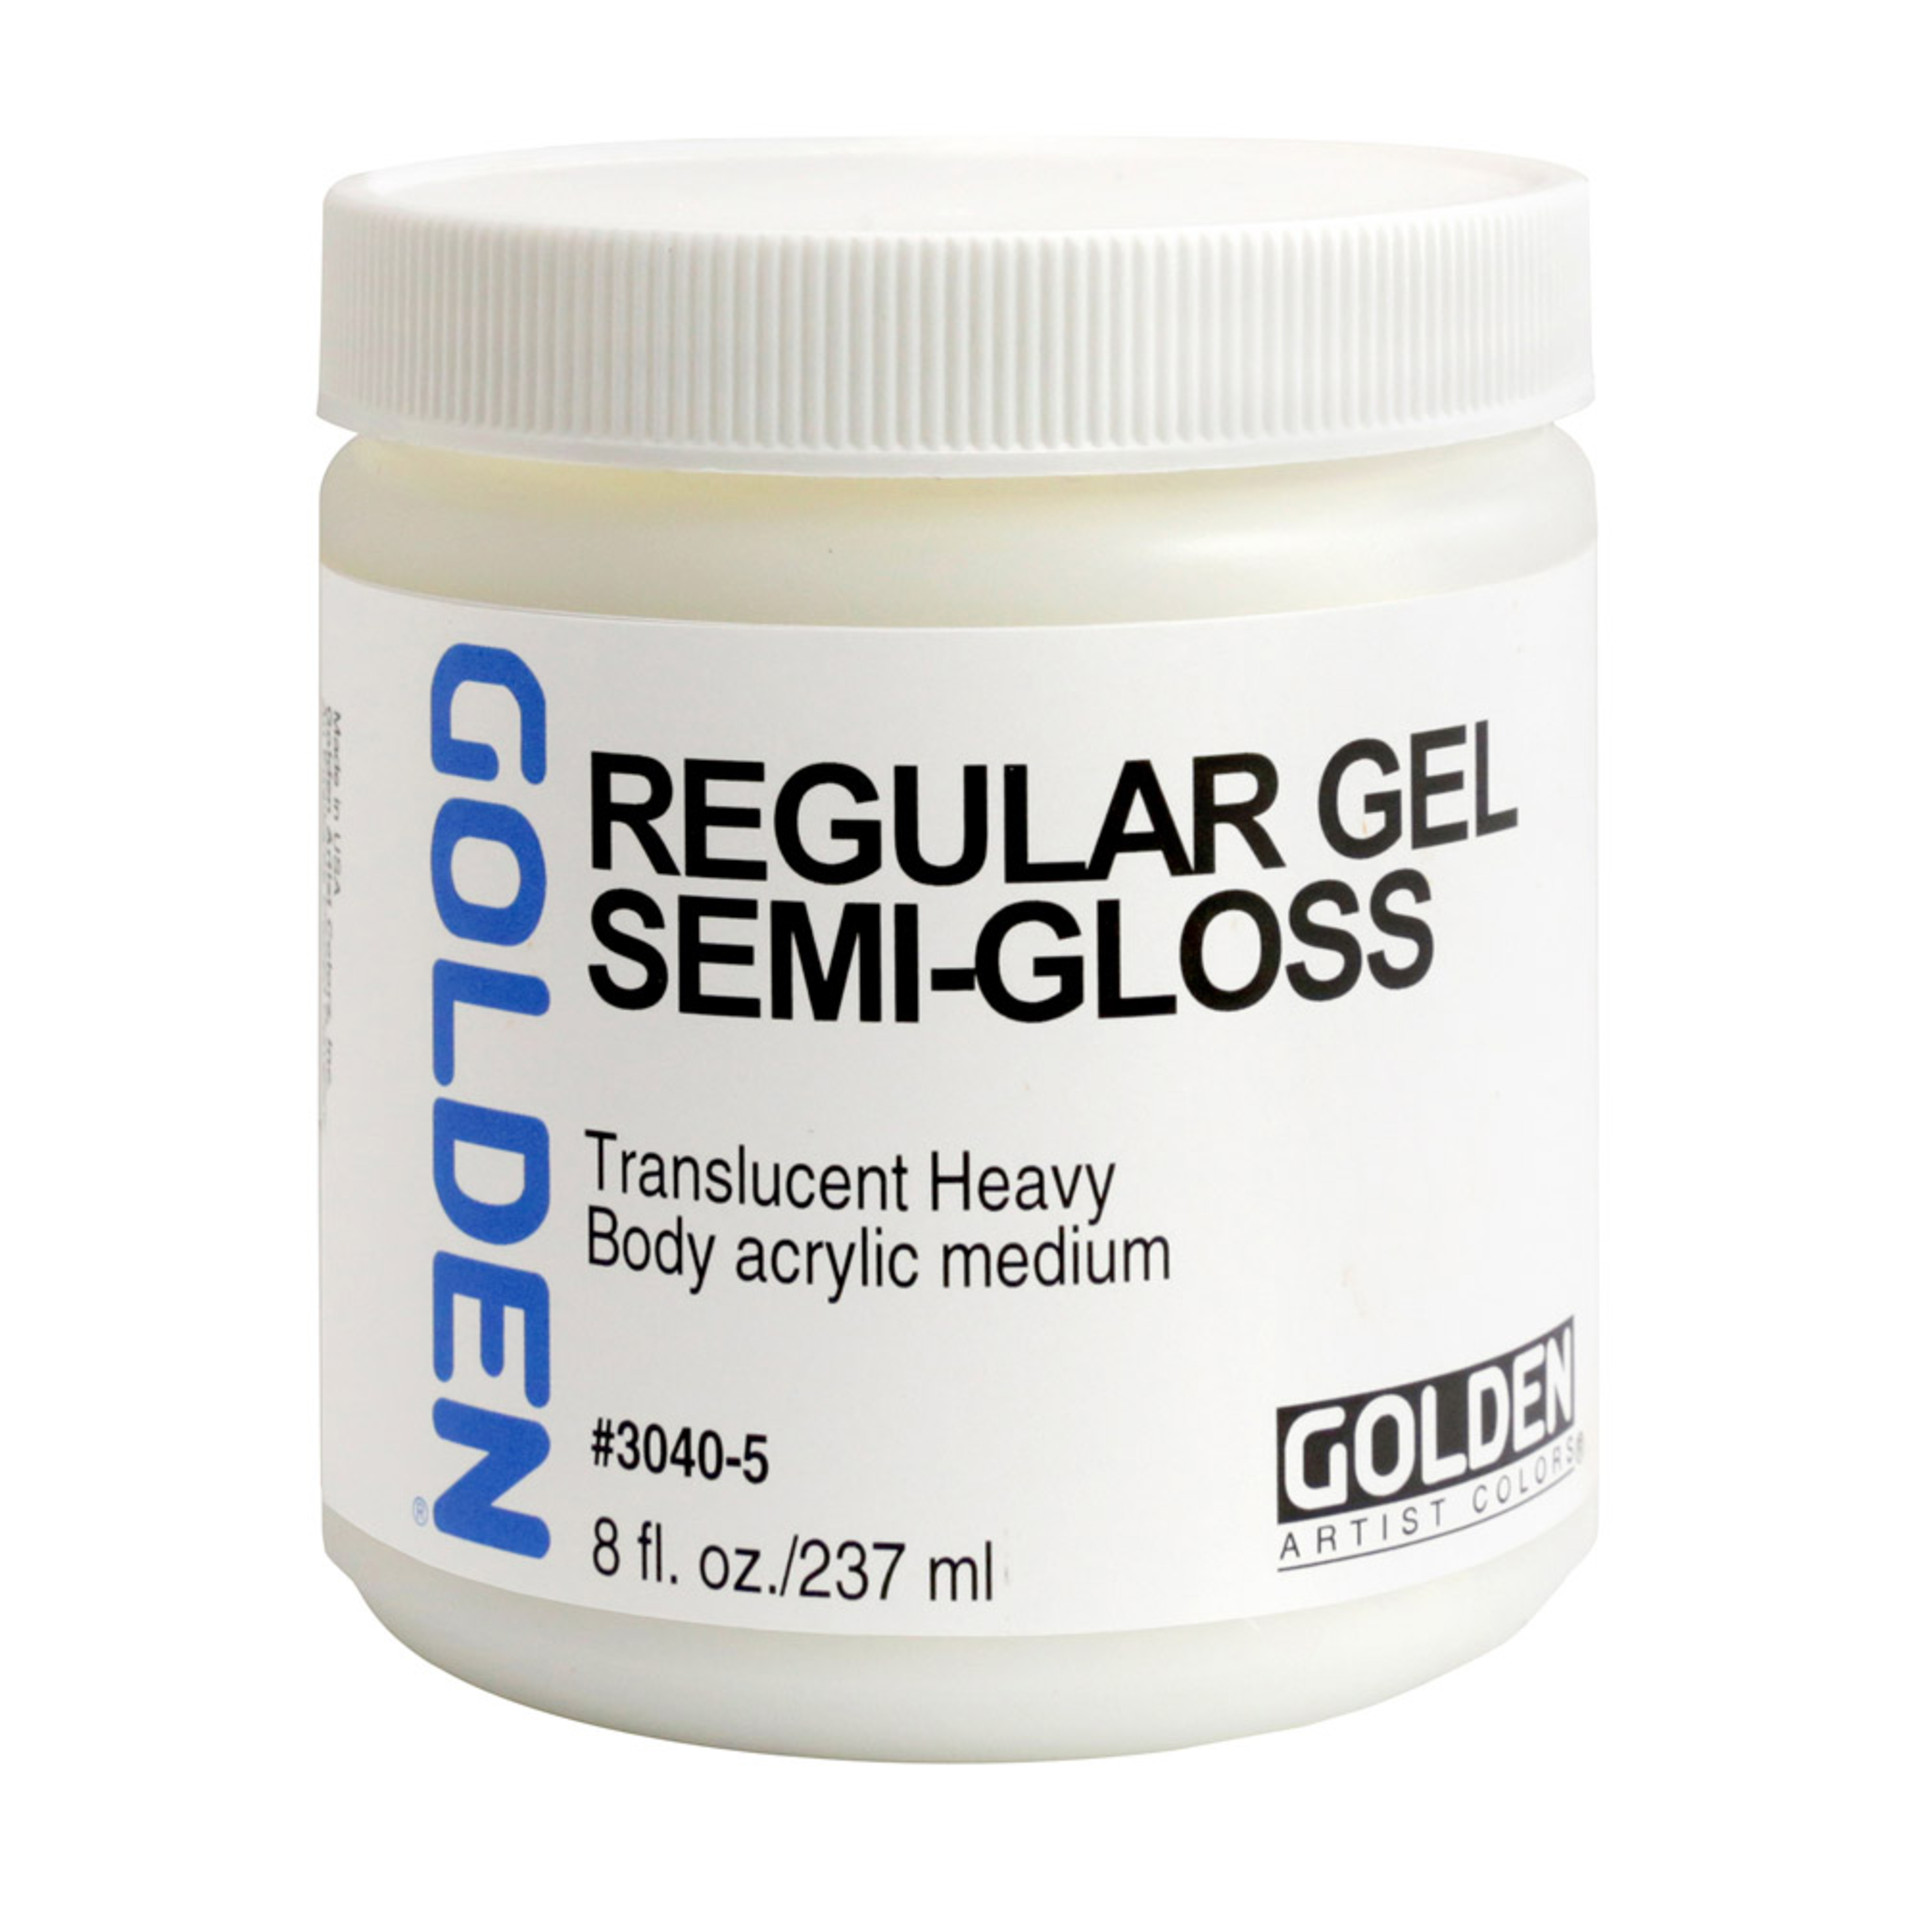 Golden Semi-Gloss Regular Gel 8oz